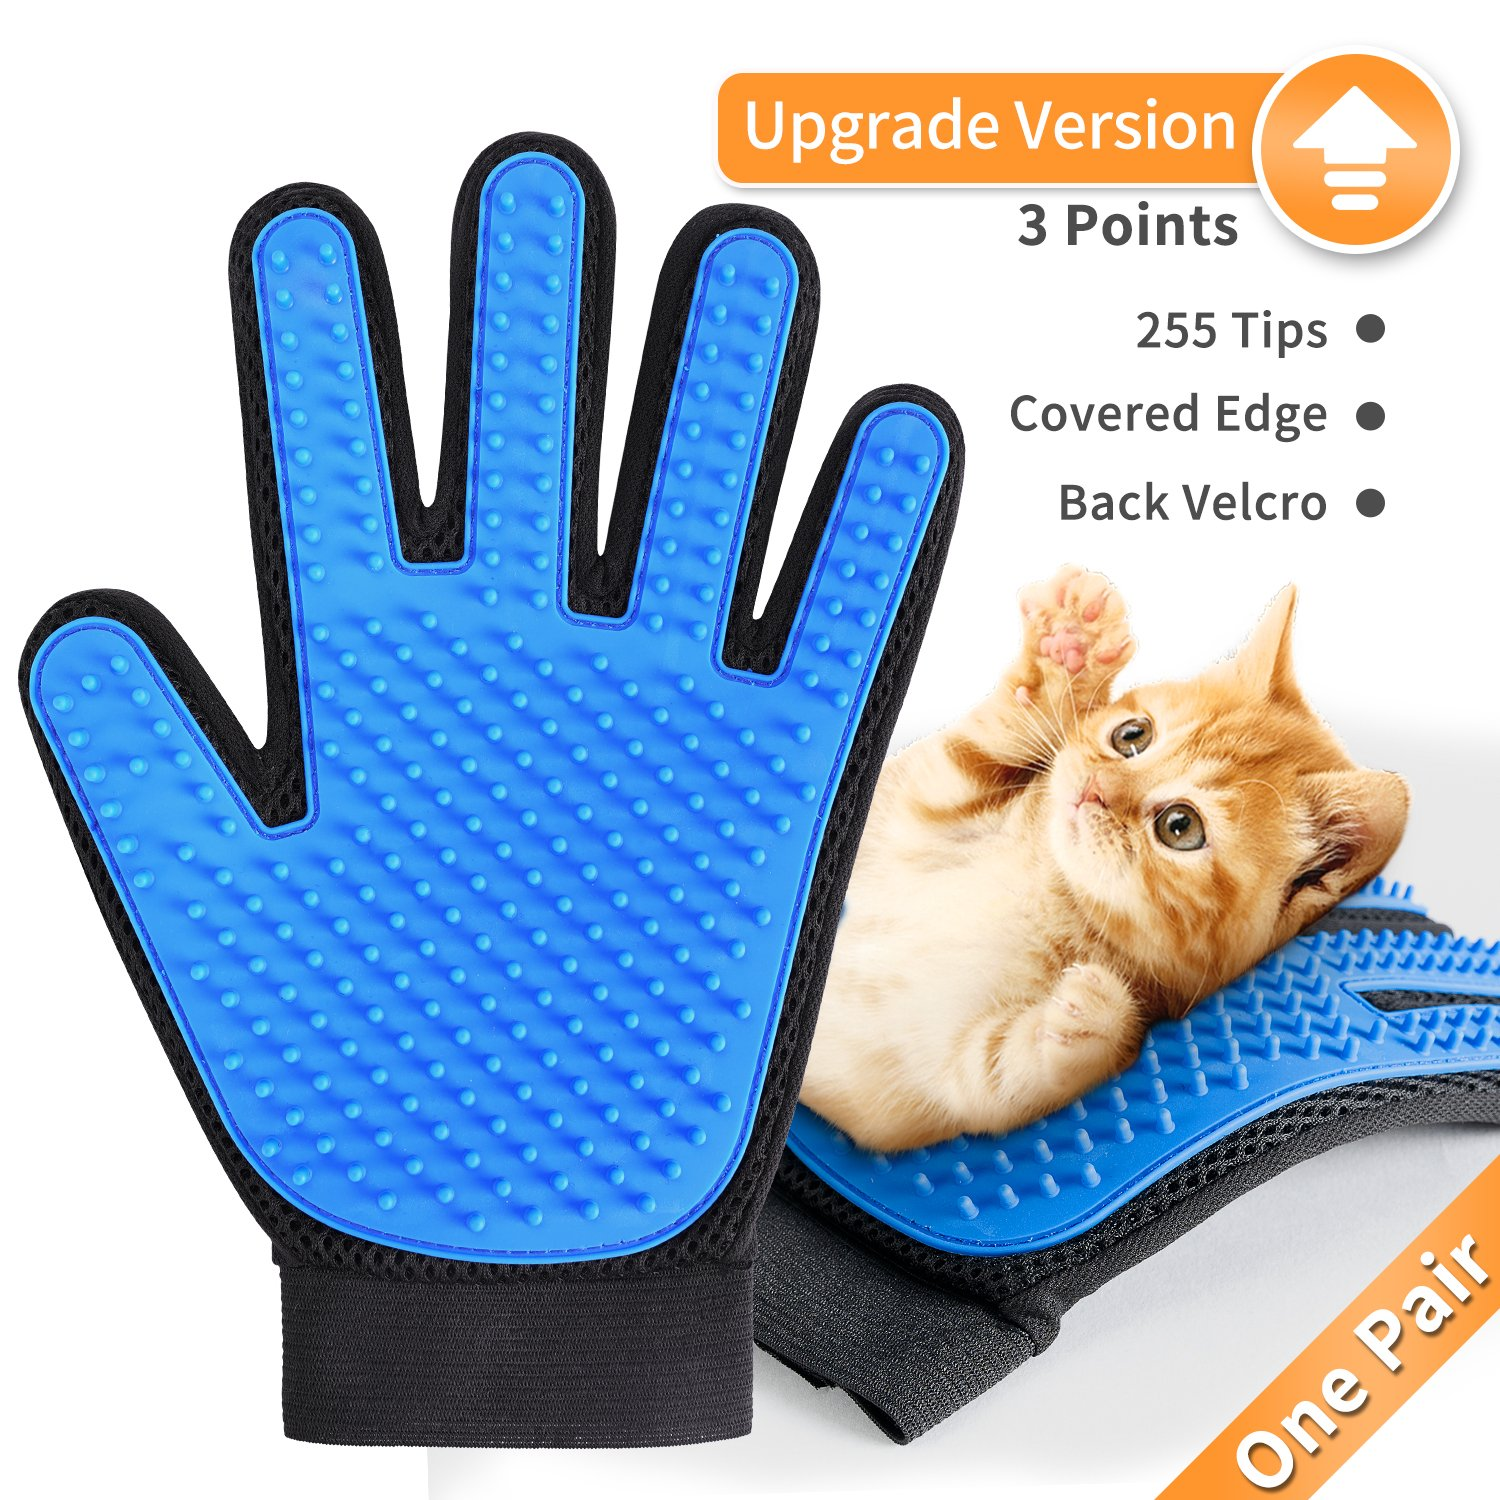 DESINO [Upgrade Version] Pet Grooming Glove Efficient Pet Hair Remover Mitt, Gentle Deshedding Bathing Brush Glove, Massage Tool for Dogs and Cats with Long and Short Fur, 1 Pair